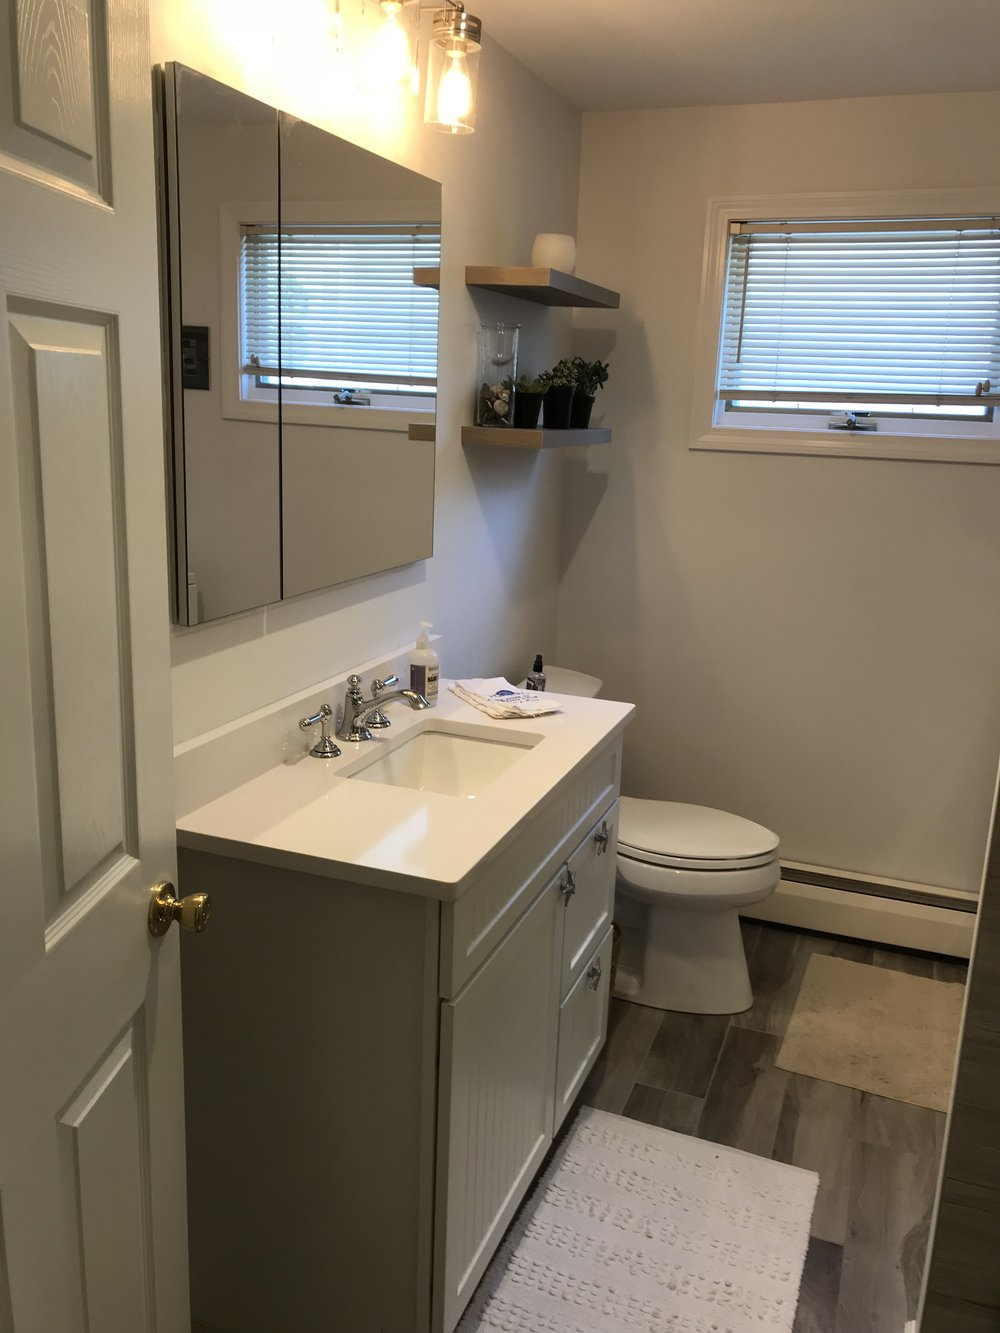 Shaw Remodeling - Bathroom Remodel in Niantic CT